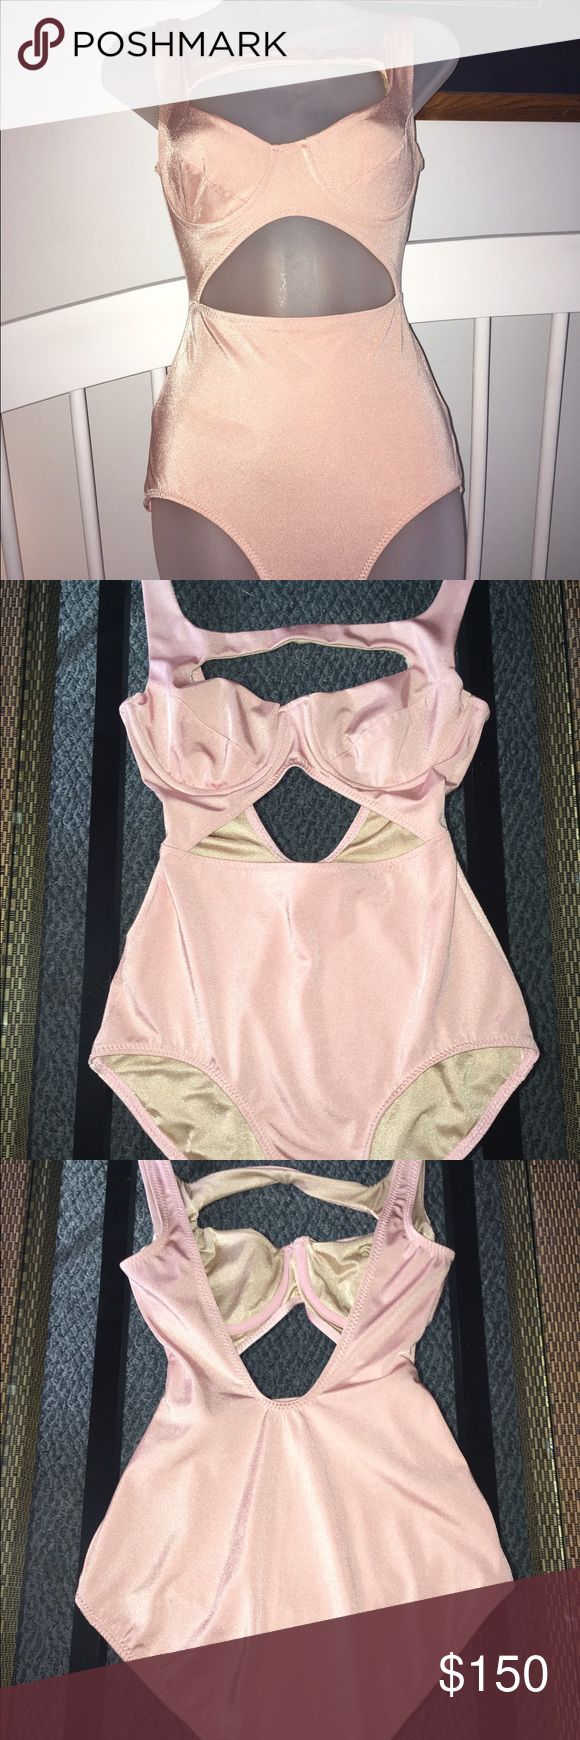 Vintage Norma Kamali Pin-up Pink Cut-out Swimsuit Excellent condition. No trades. Price firm unless bundled. Norma Kamali Swim One Pieces